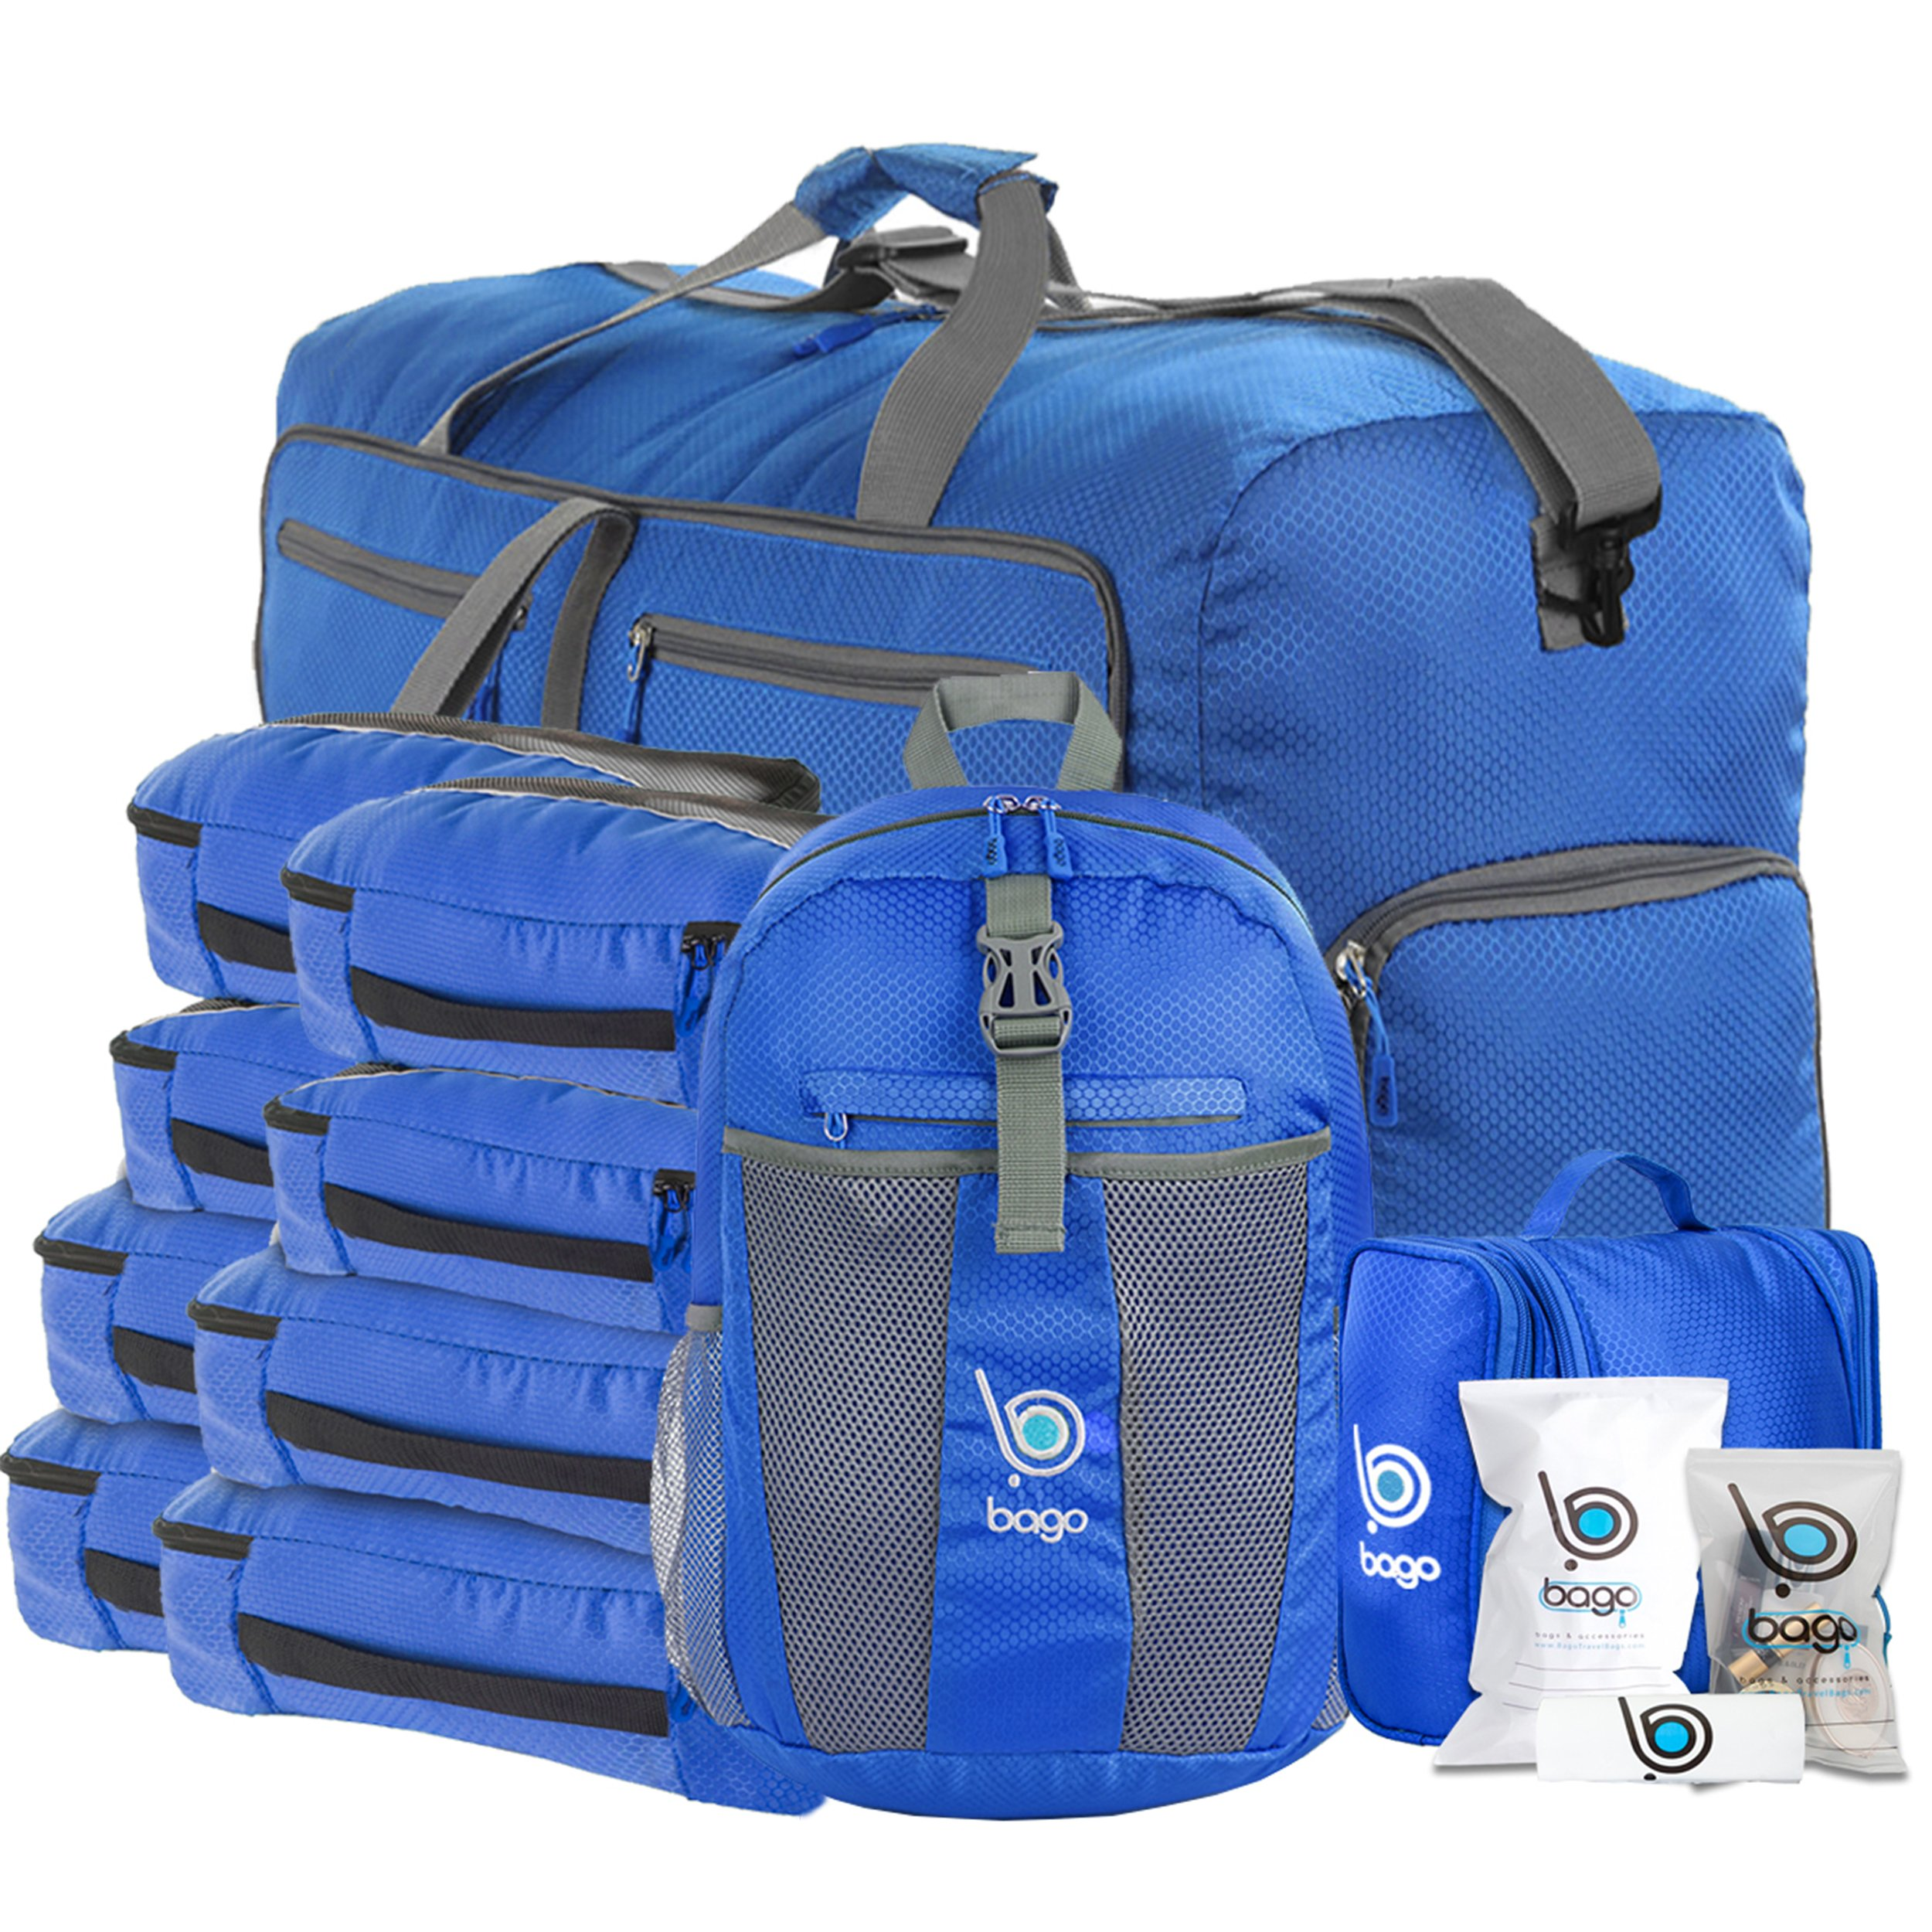 Lightweight Family Travel Set - Luggage, Carryon & Packing Accessories (DeepBlue)